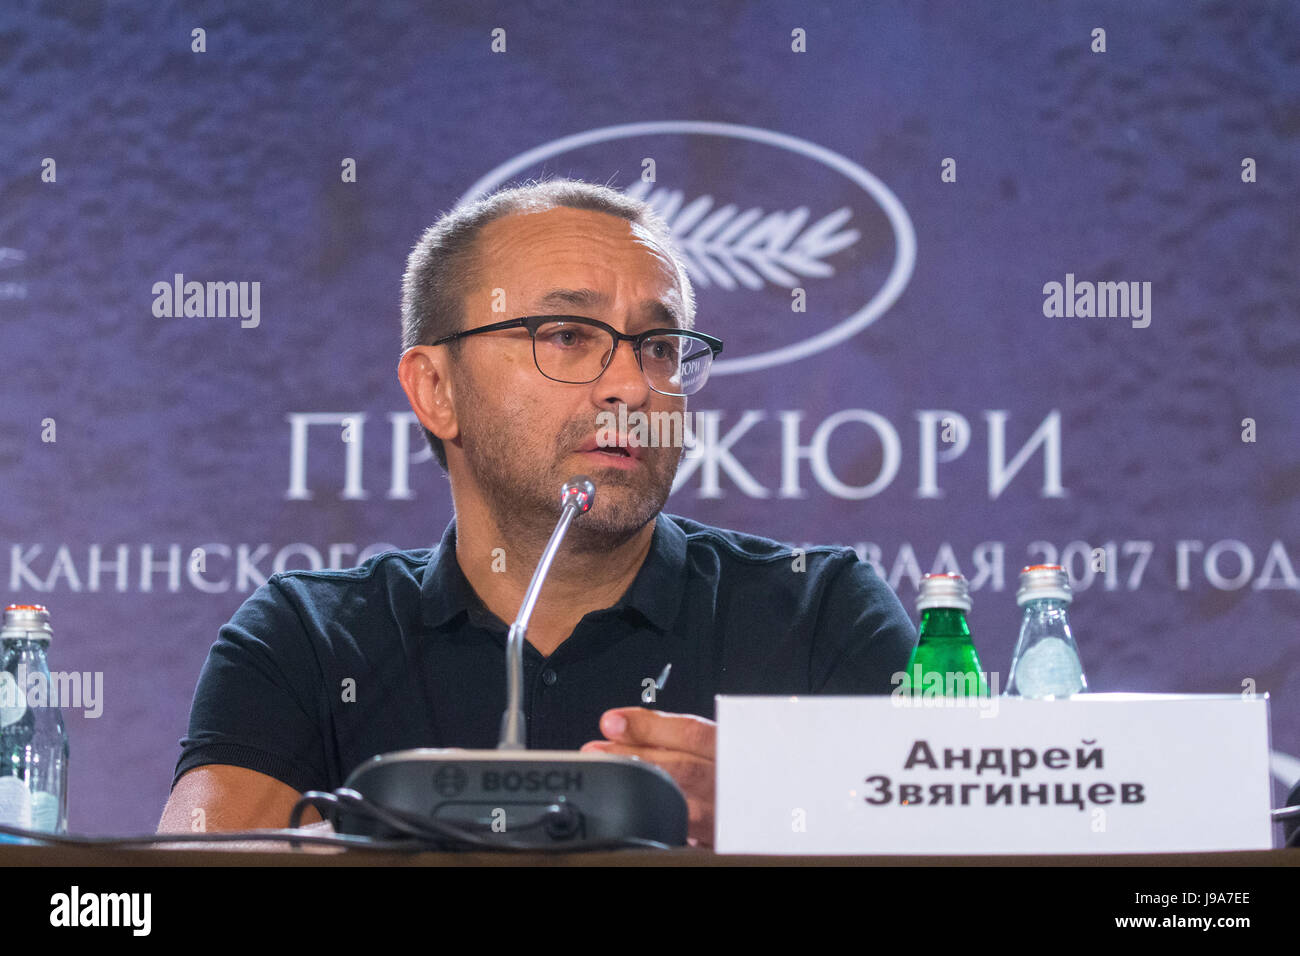 Moscow, Russia. 31nd May 2017. Film director Andrey Zvyagintsev gestures at a news conference on the premiere of - Stock Image